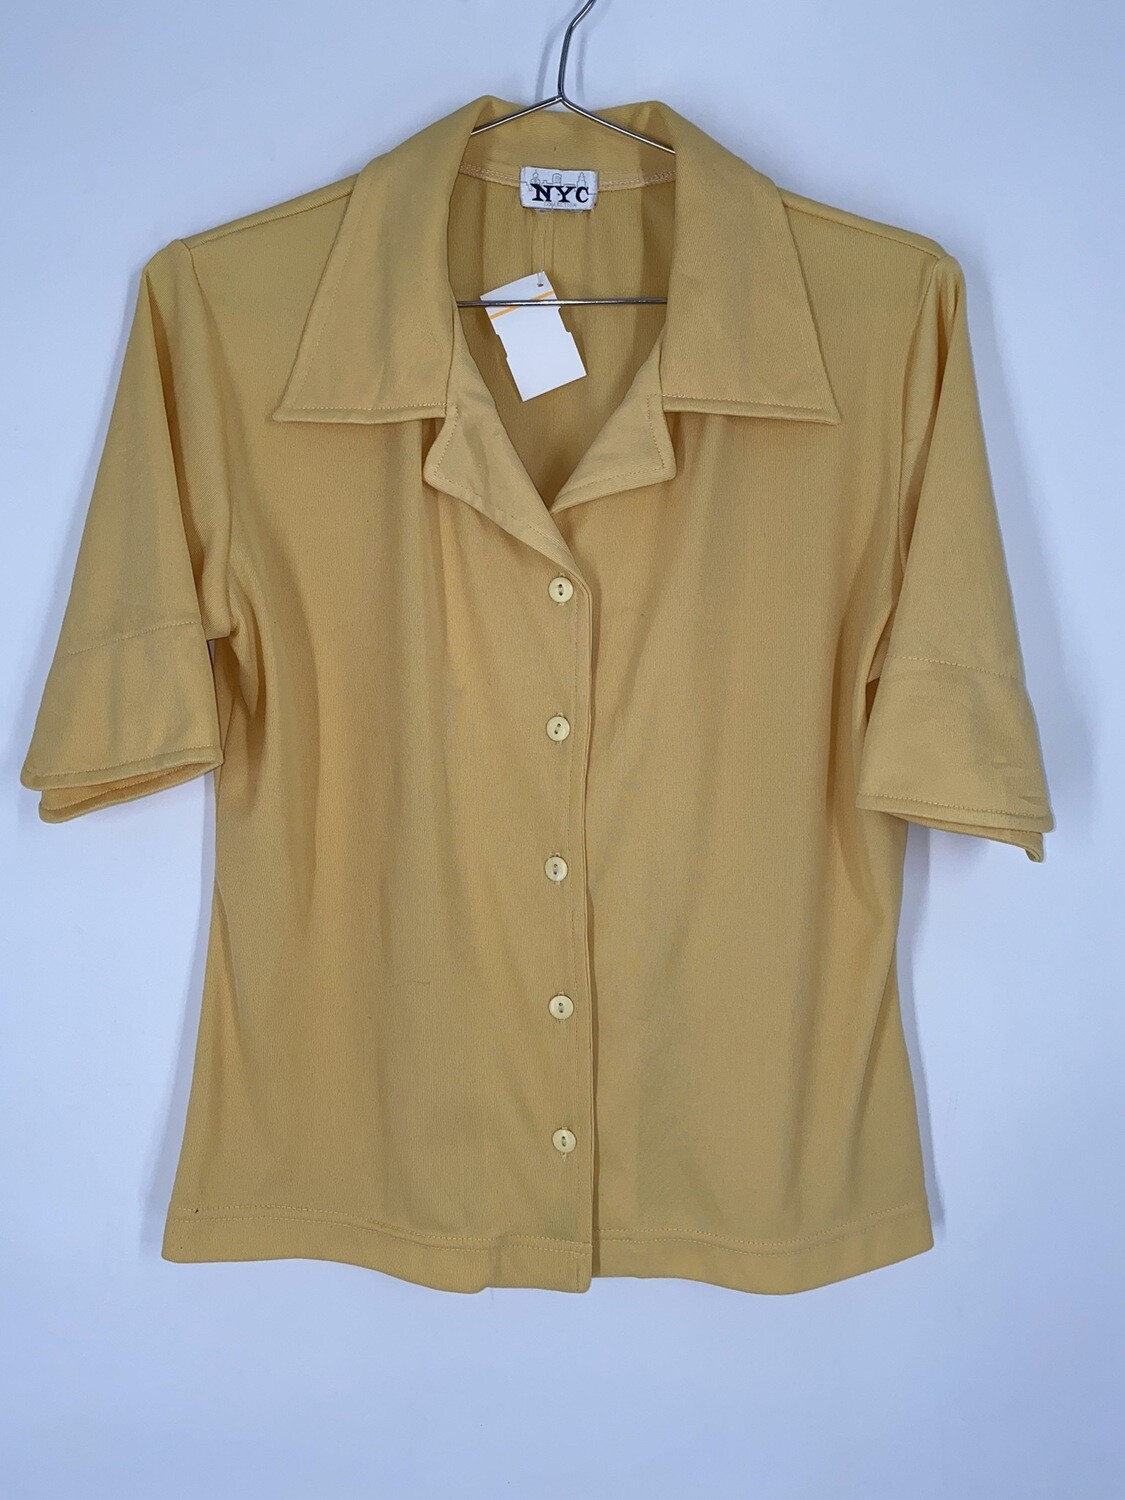 NYC Blouse Size M